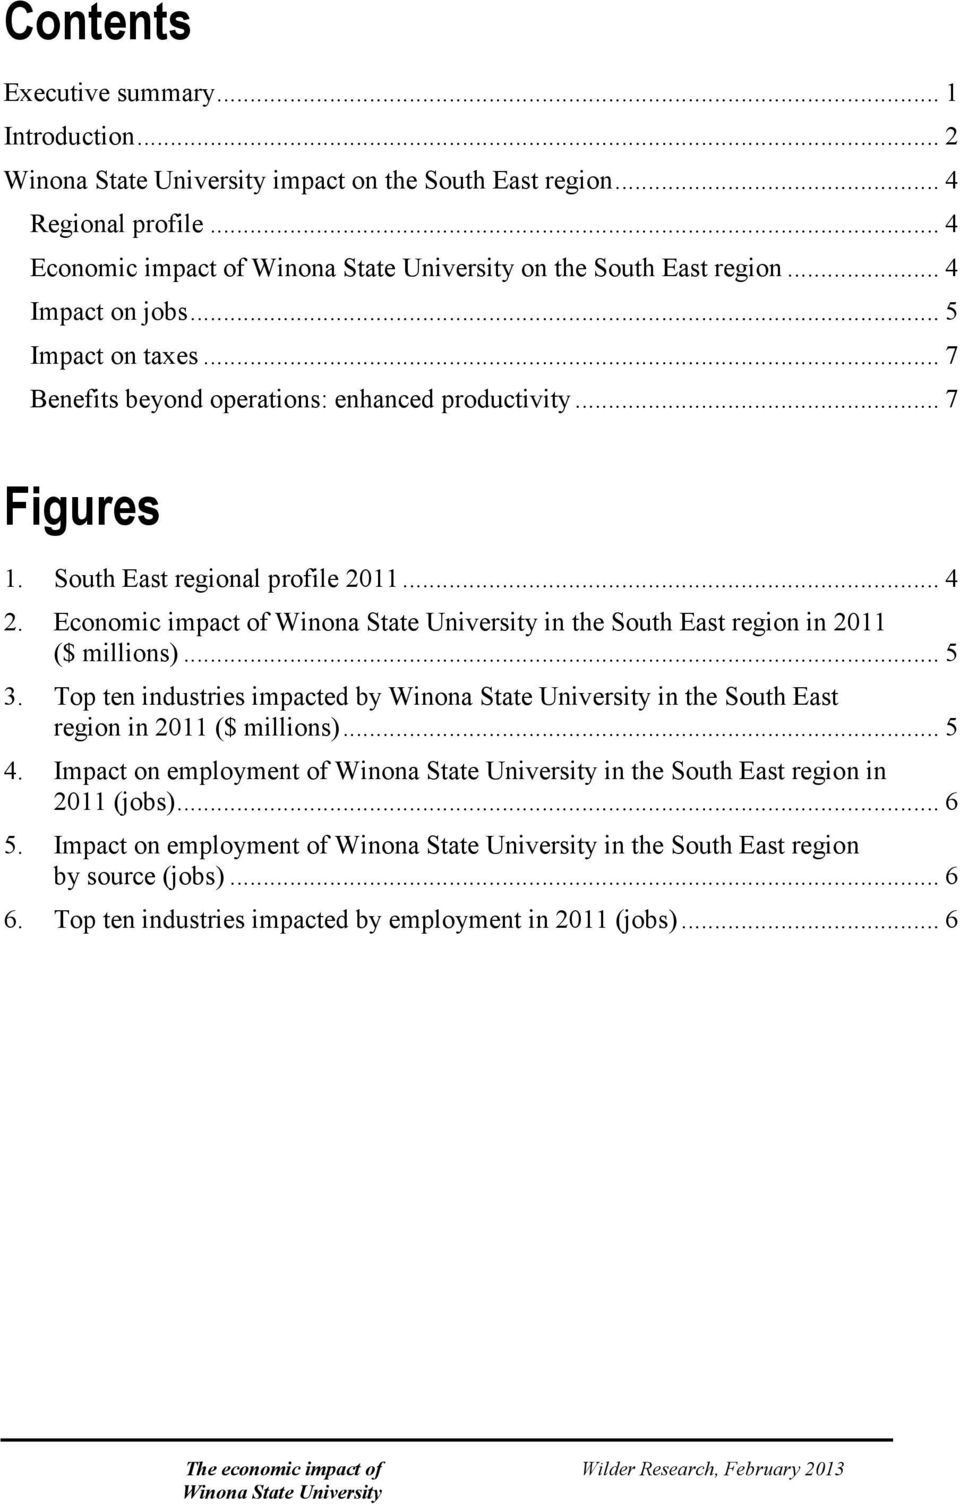 Economic impact of in the South East region in 2011 ($ millions)... 5 3. Top ten industries impacted by in the South East region in 2011 ($ millions)... 5 4.